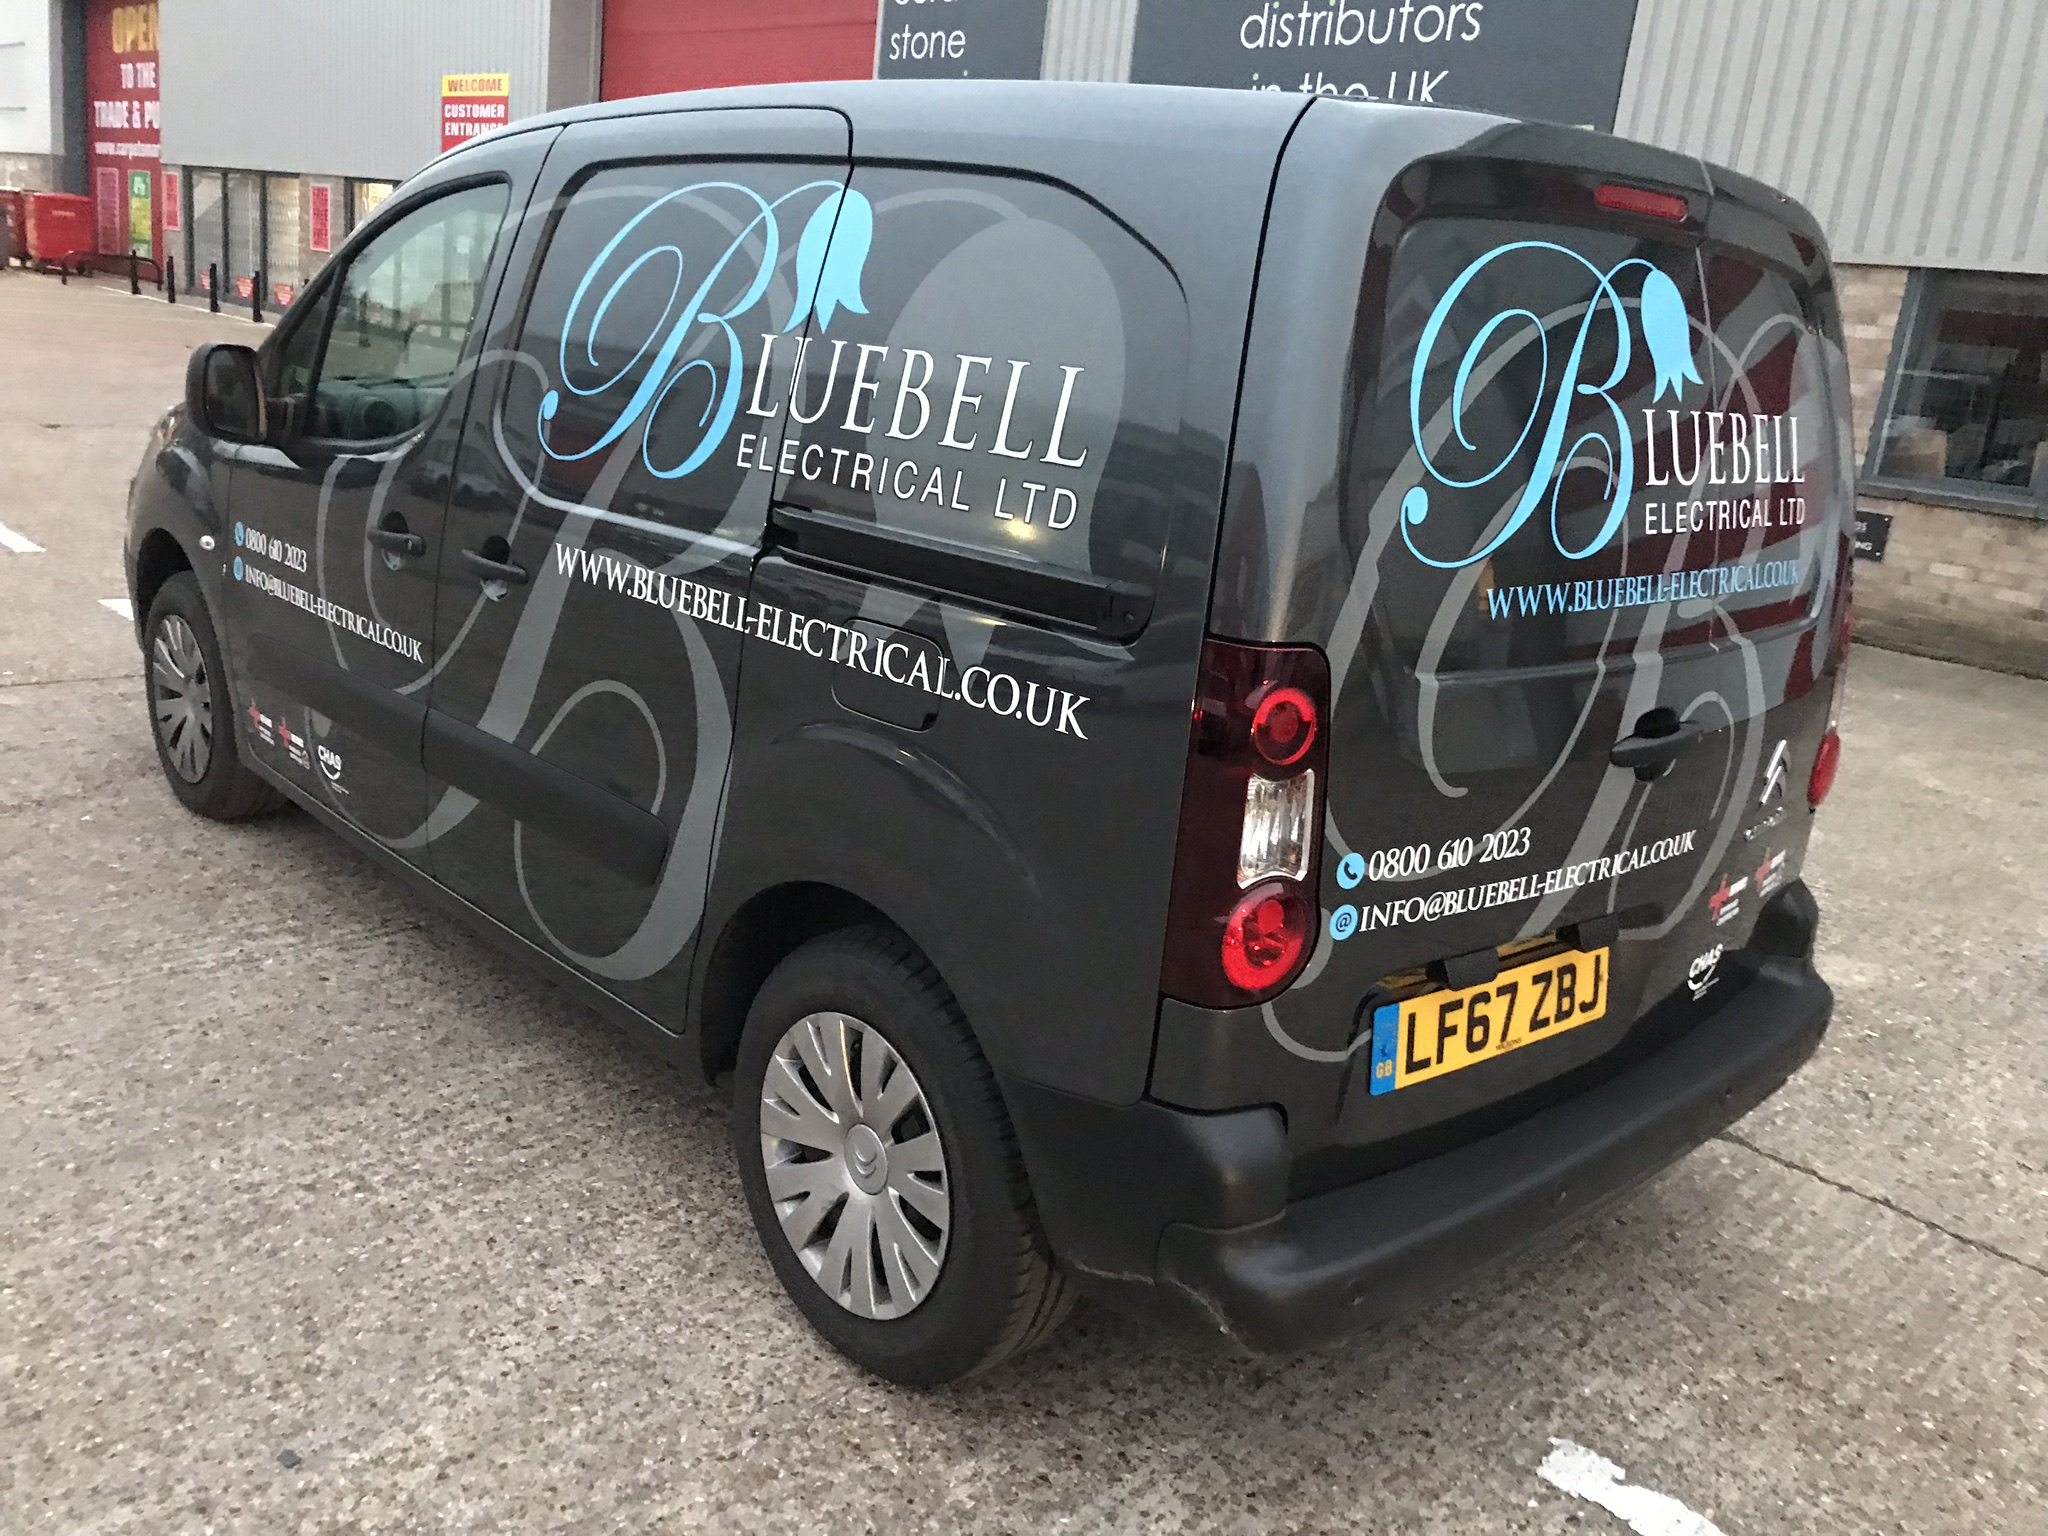 BLUEBELL ELECTRICAL BERLINGO VAN